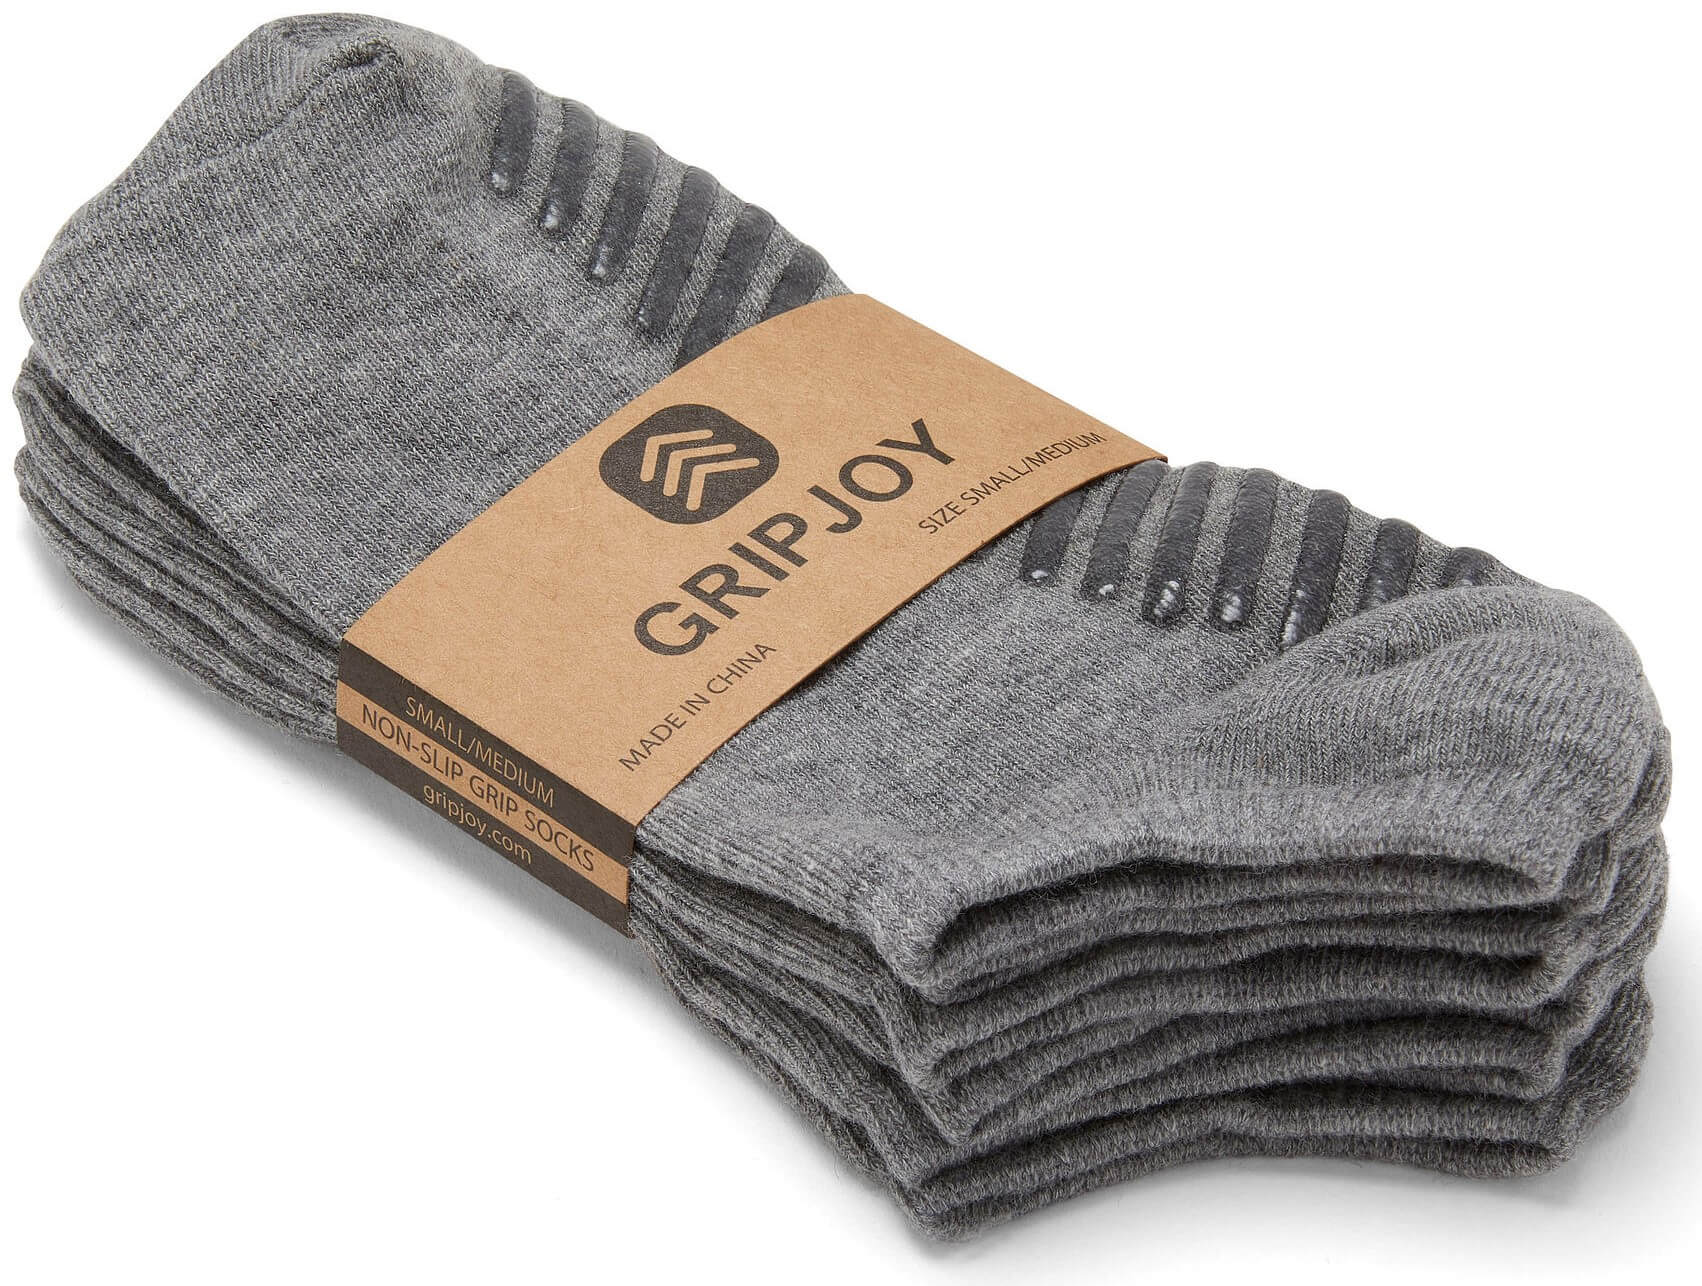 Gripjoy Women's Ankle Grip Socks Light Grey 3-Pack - Gripjoy Socks